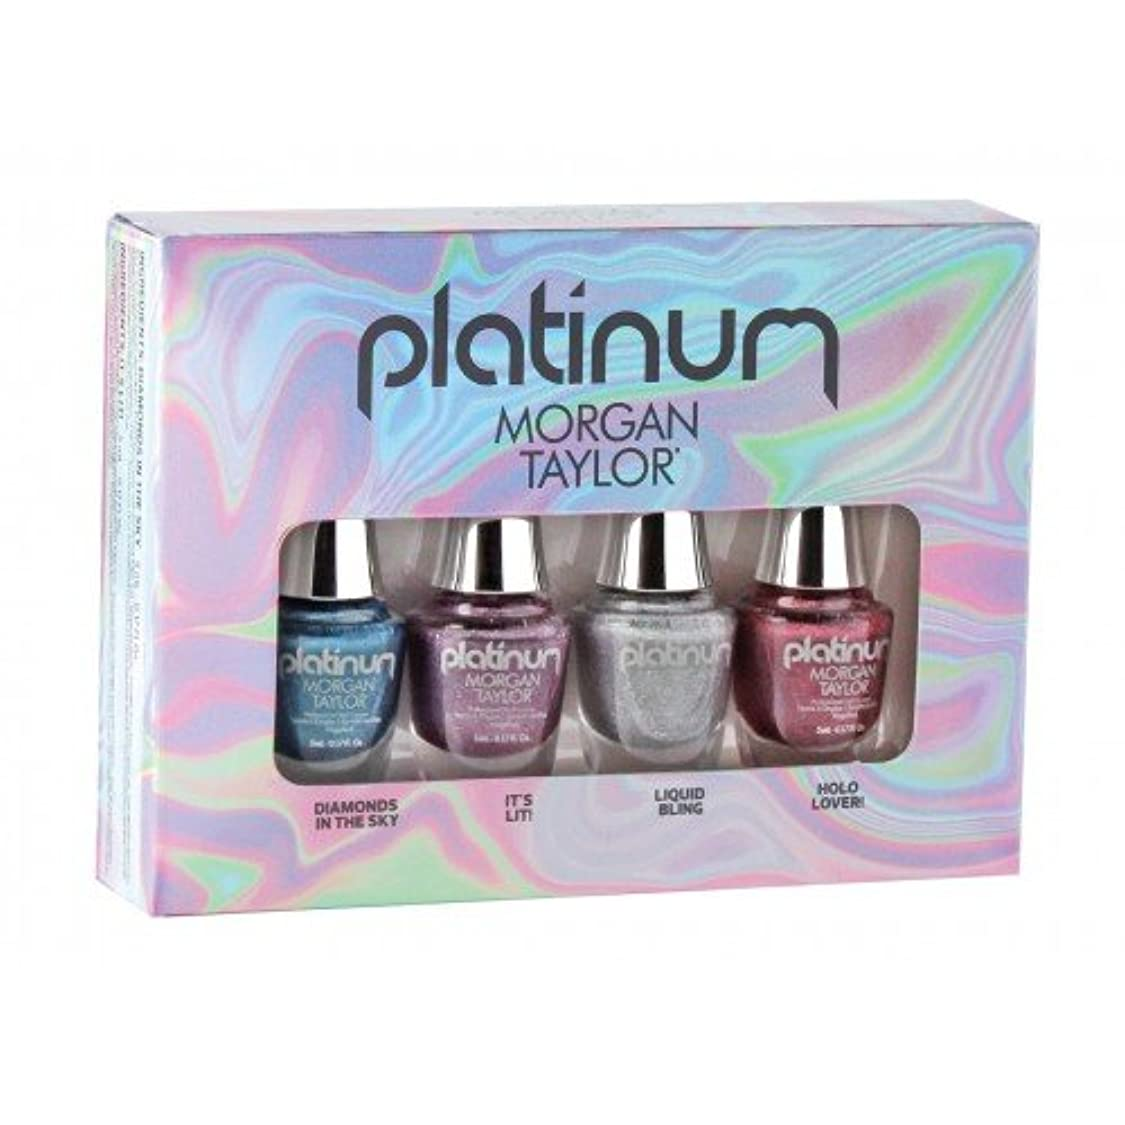 ビジュアル残高帝国主義Morgan Taylor Nail Lacquer - Platinum Collection - Mini 4 pk Set - 5 mL / 0.17 oz